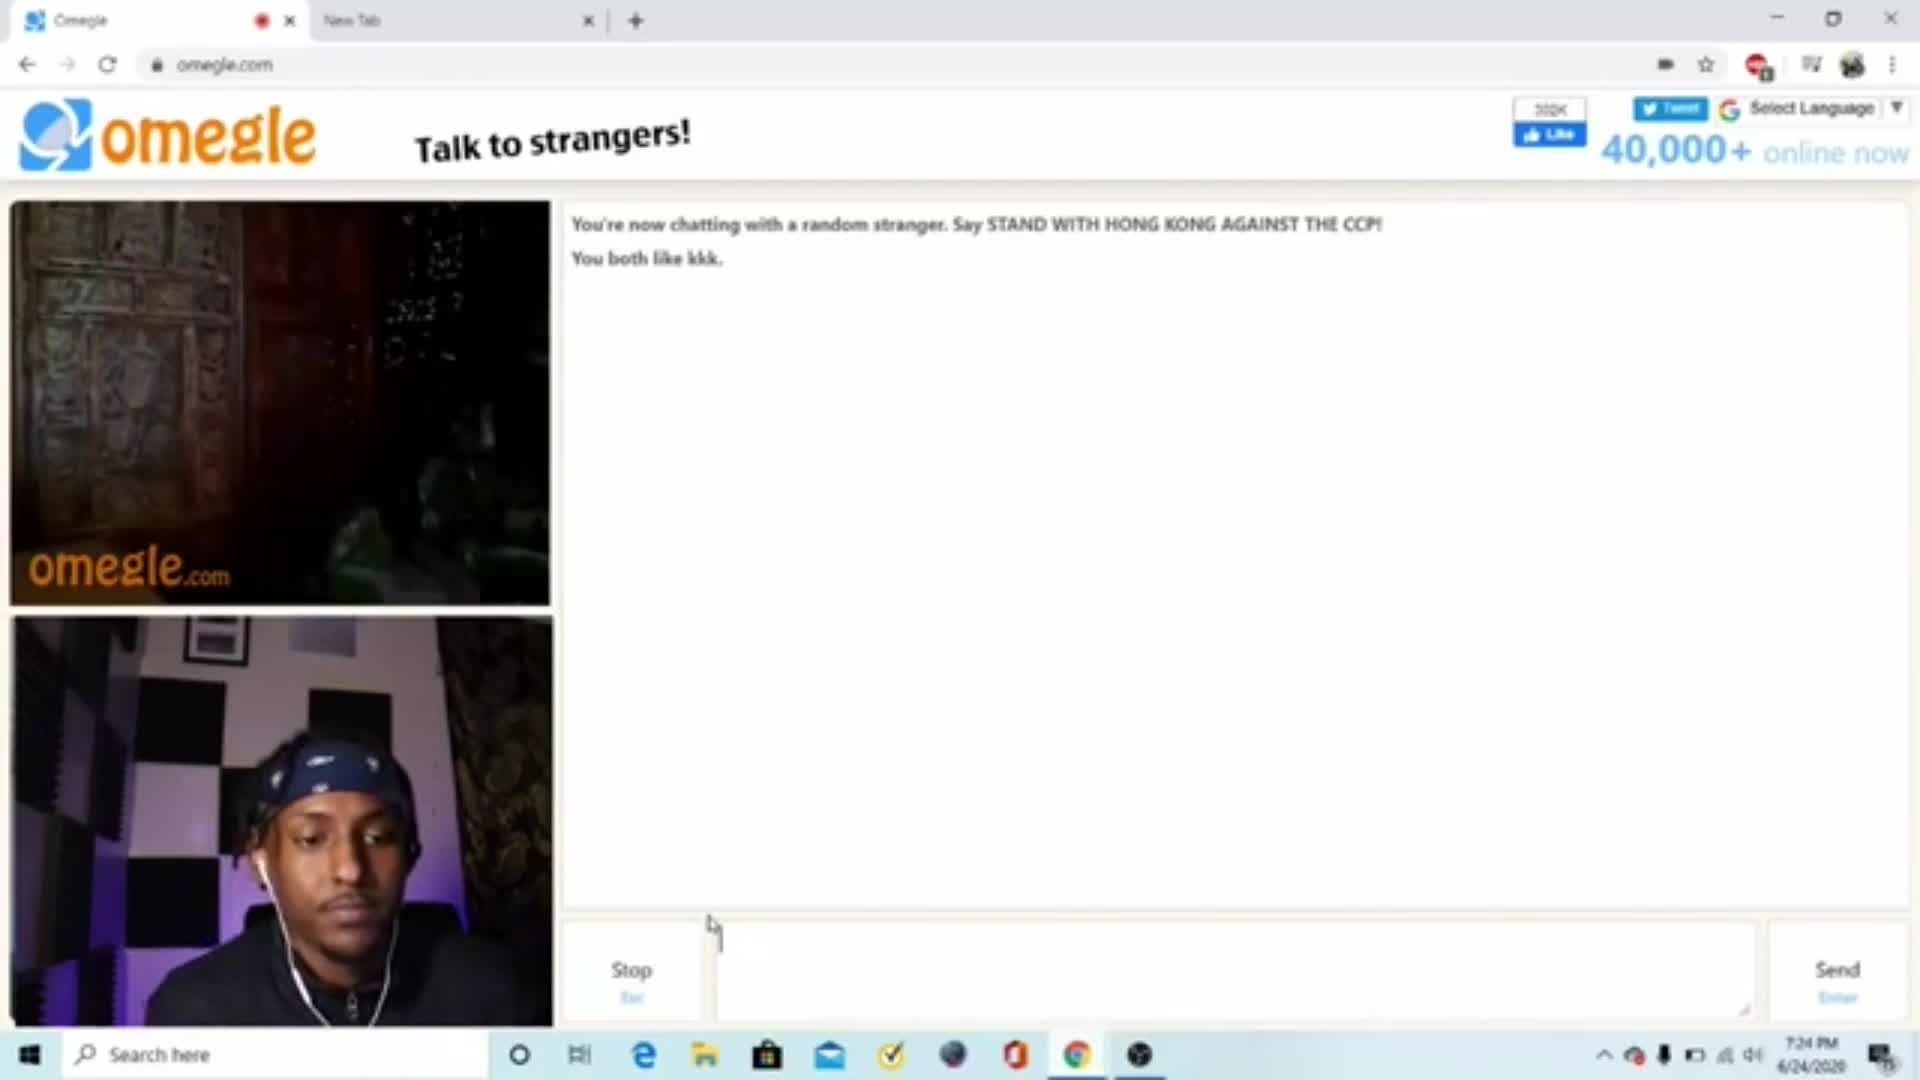 Black Guy Meets Based White Chad on Omegle